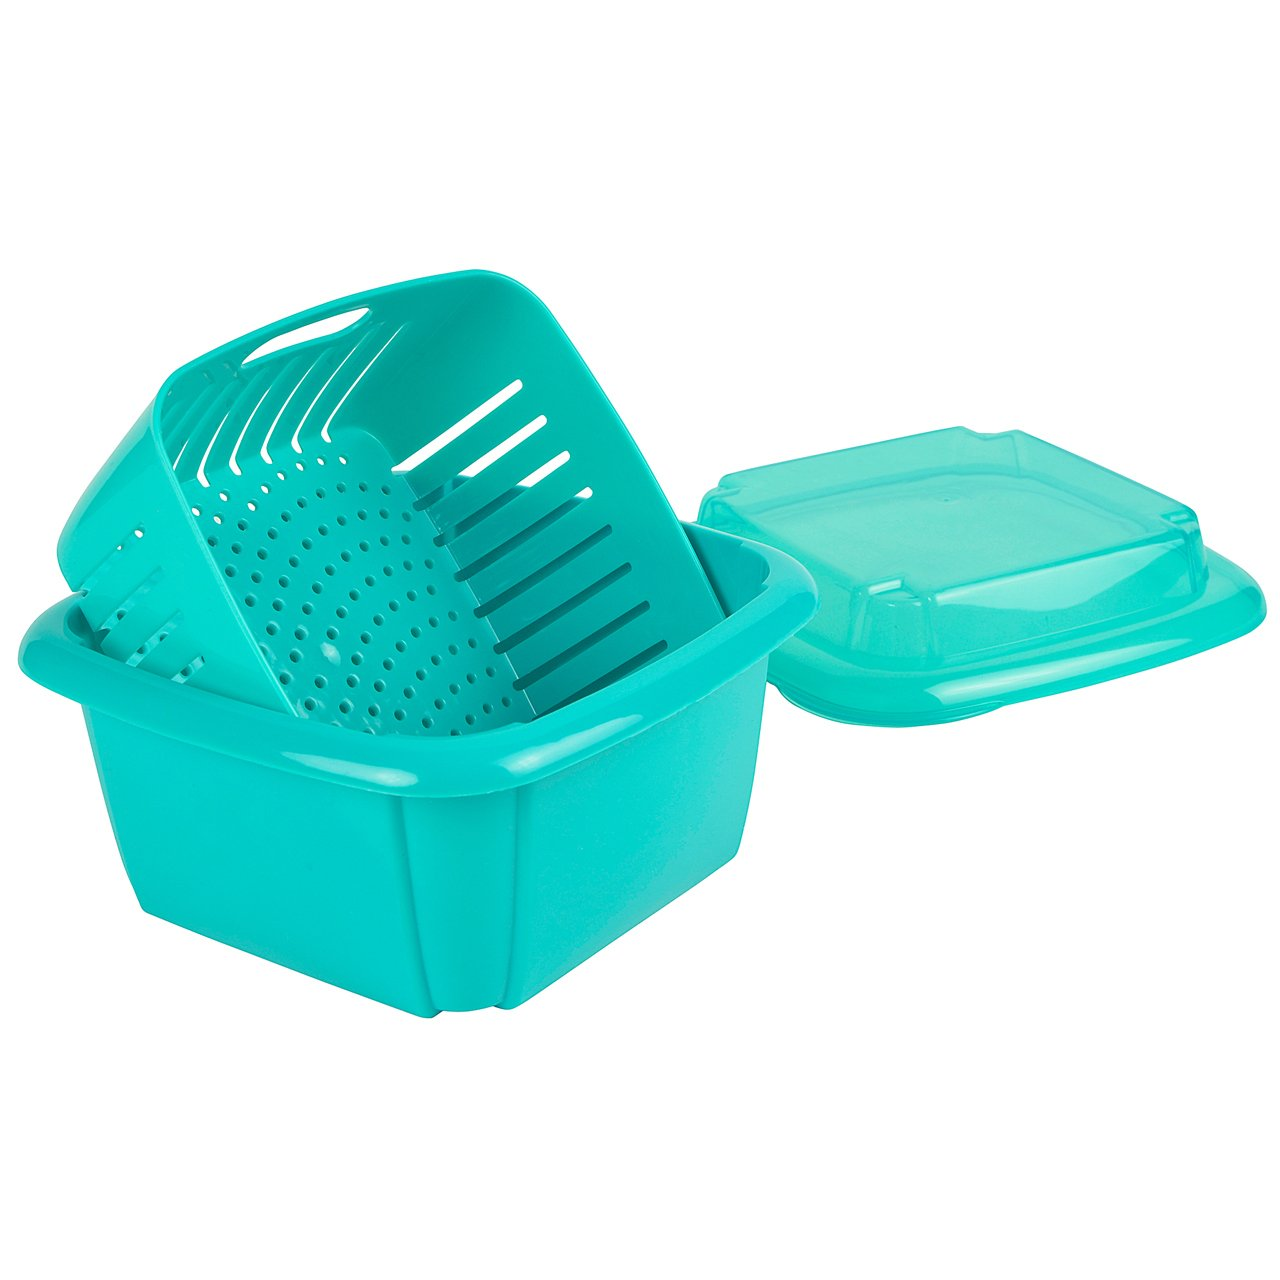 Hutzler 374TU Berry Containers, Turquoise